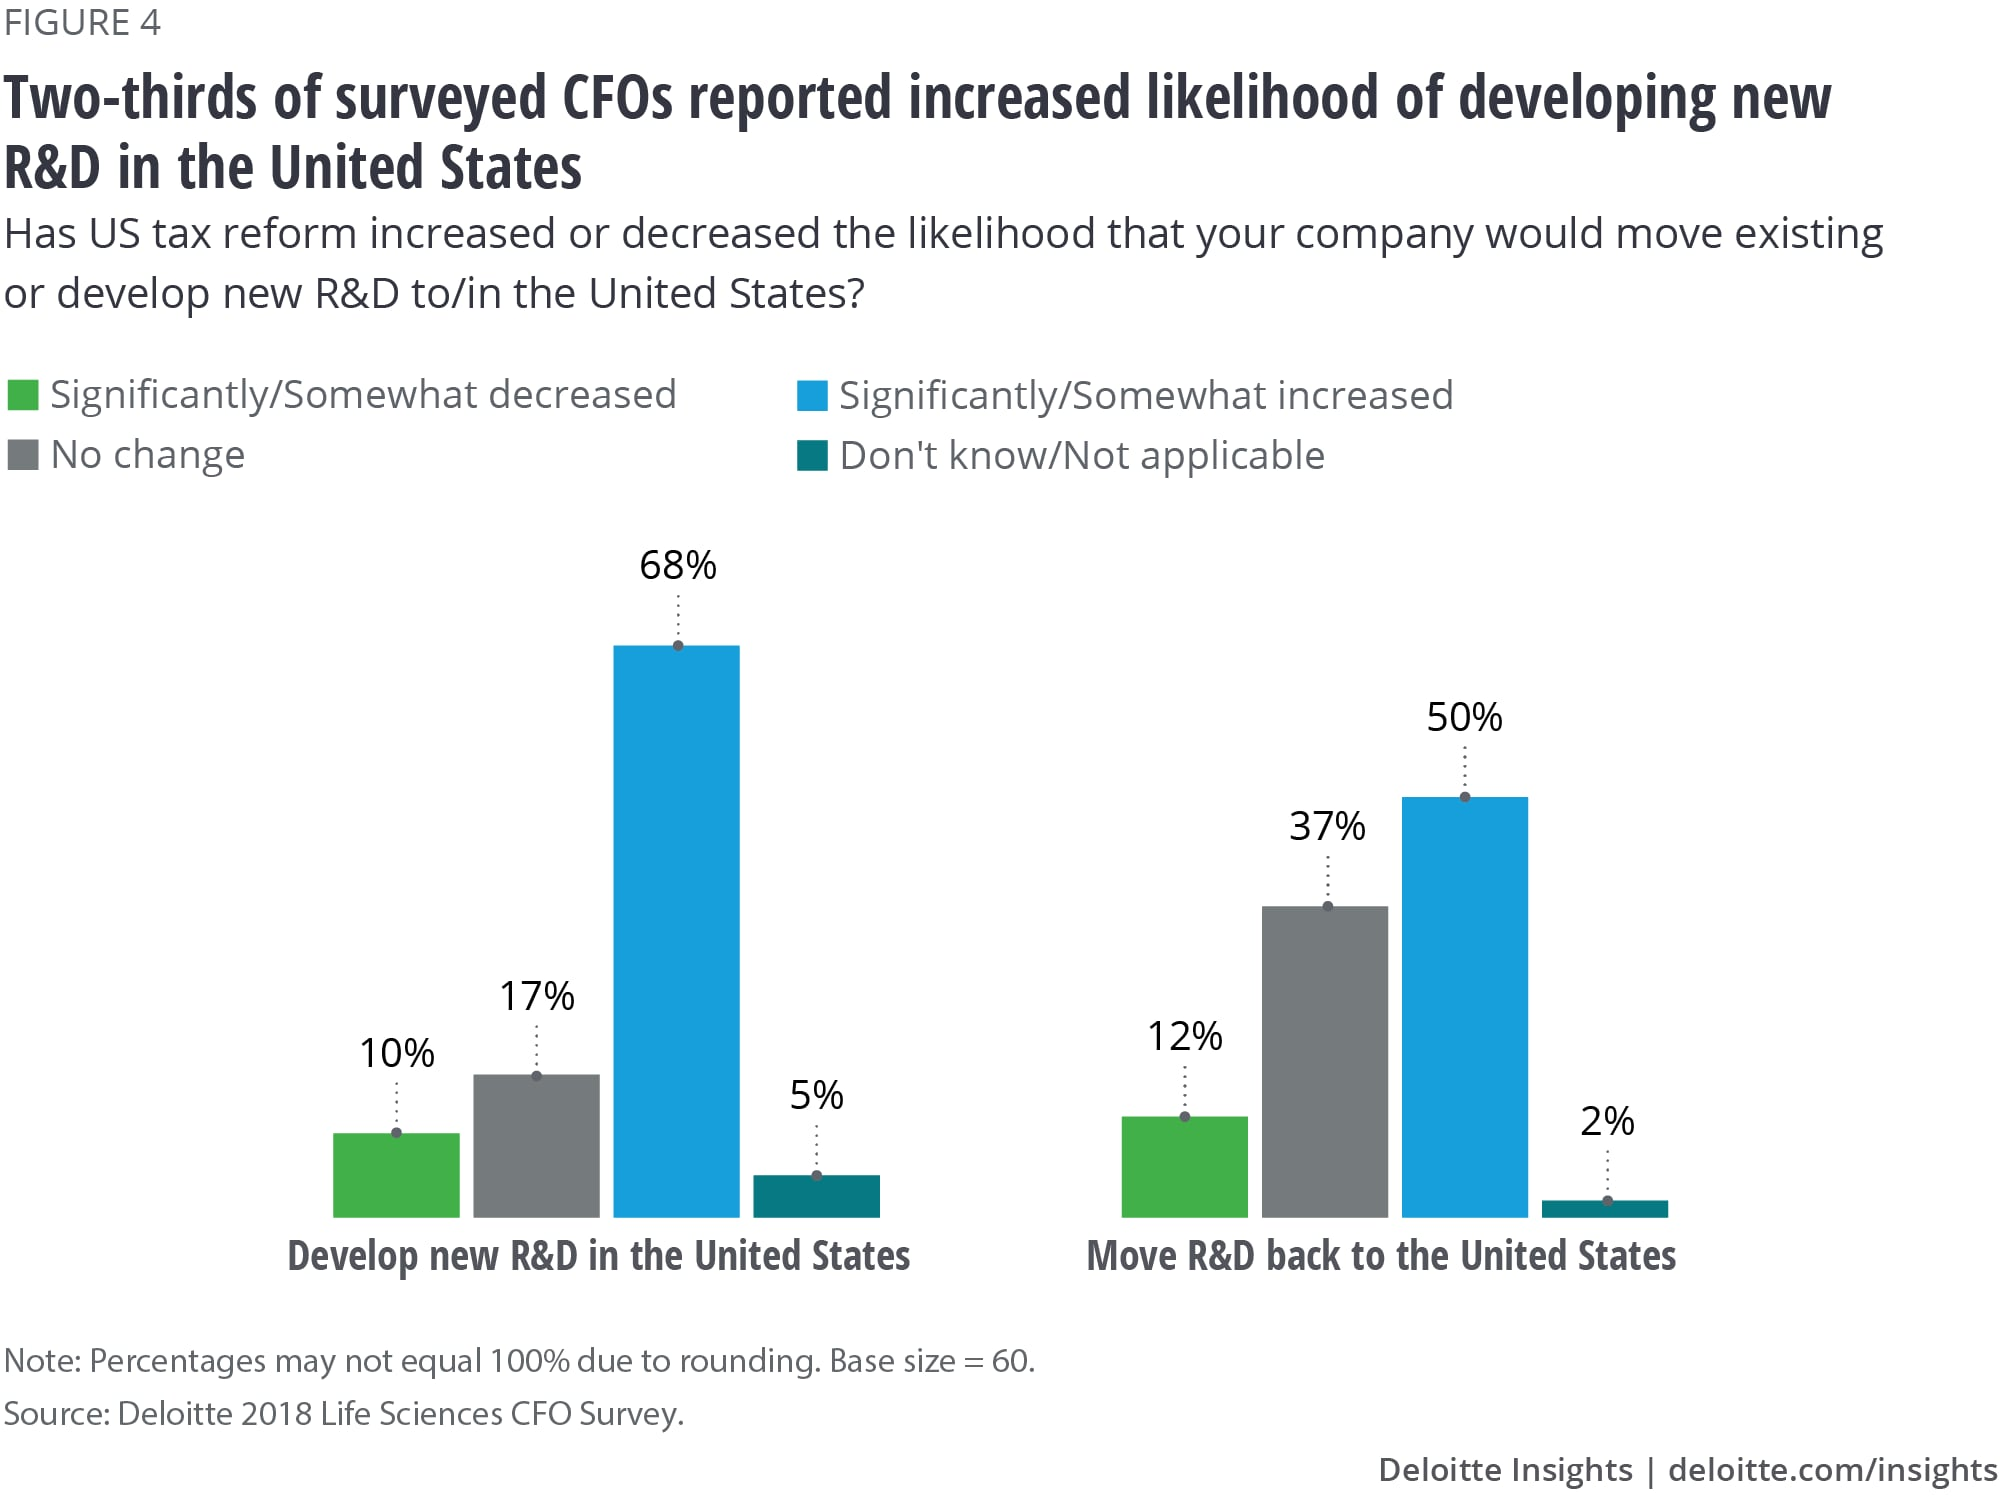 Two-thirds of surveyed CFOs reported increased likelihood of developing new R&D in the United States